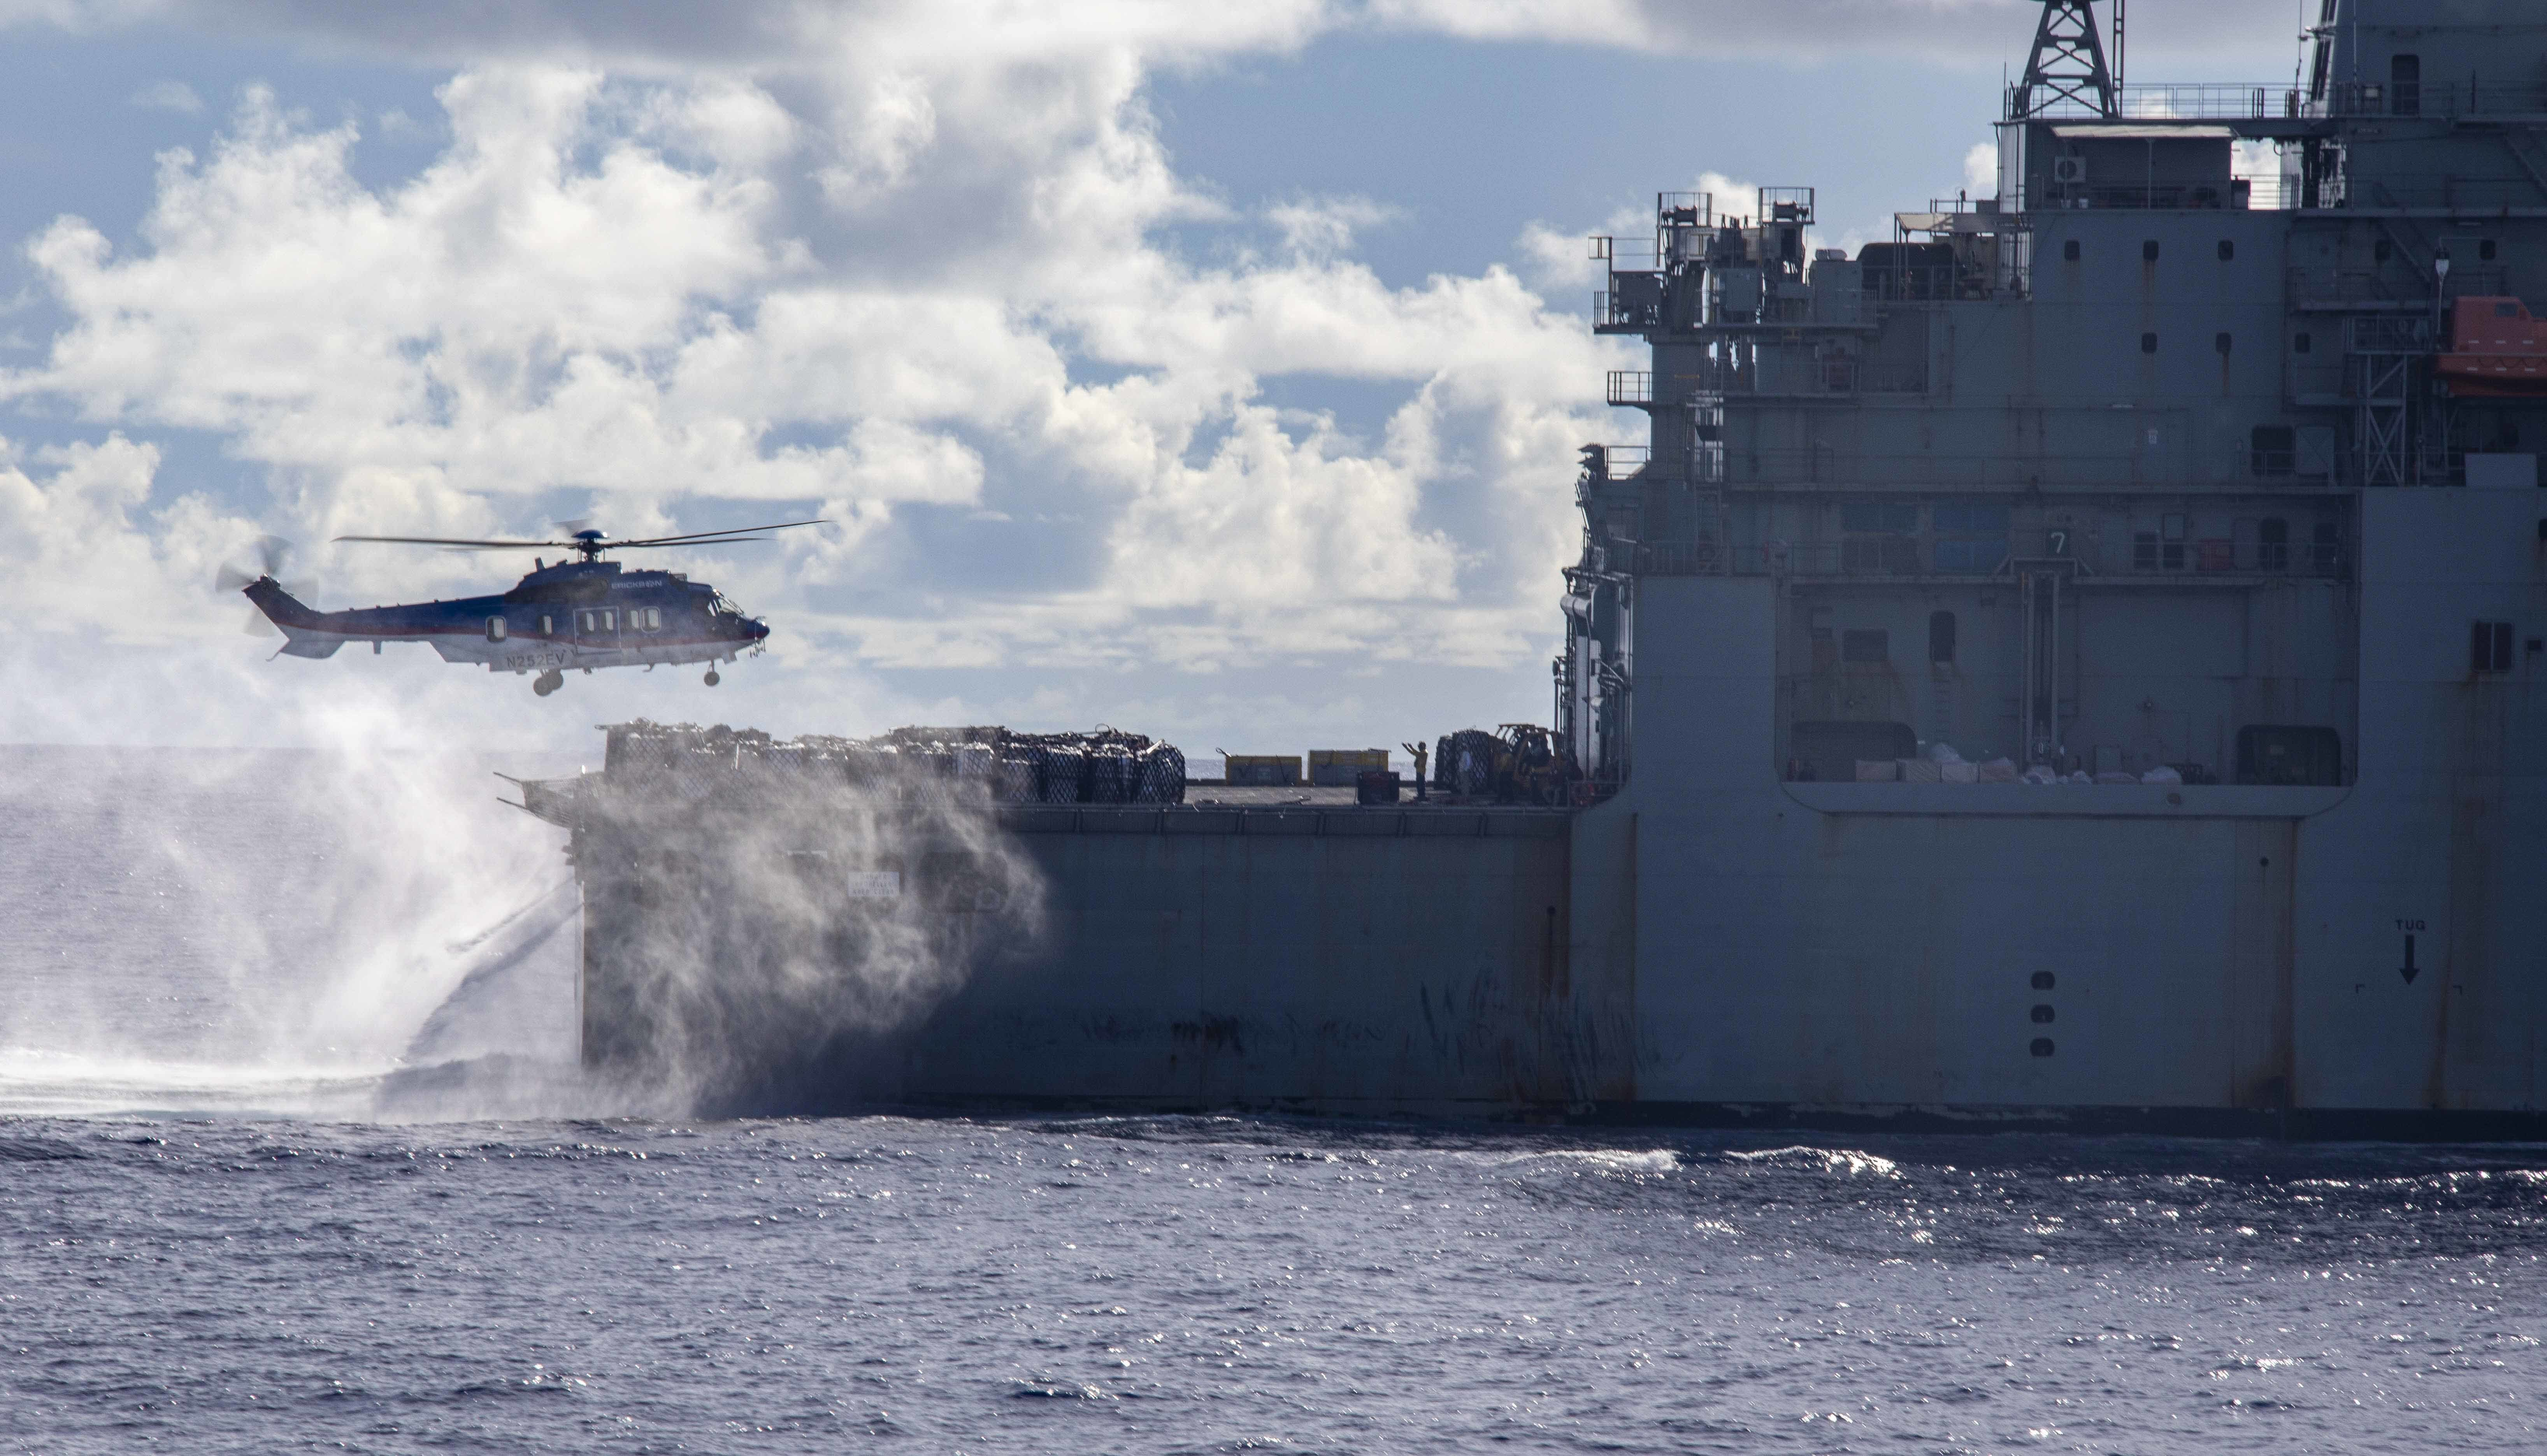 A U.S. Airbus H225 Super Puma helicopter conducts a replenishment-at-sea with the dry cargo and ammunition ship USNS Alan Shepard (T-AKE 3) and the amphibious assault ship USS Makin Island (LHD 8).